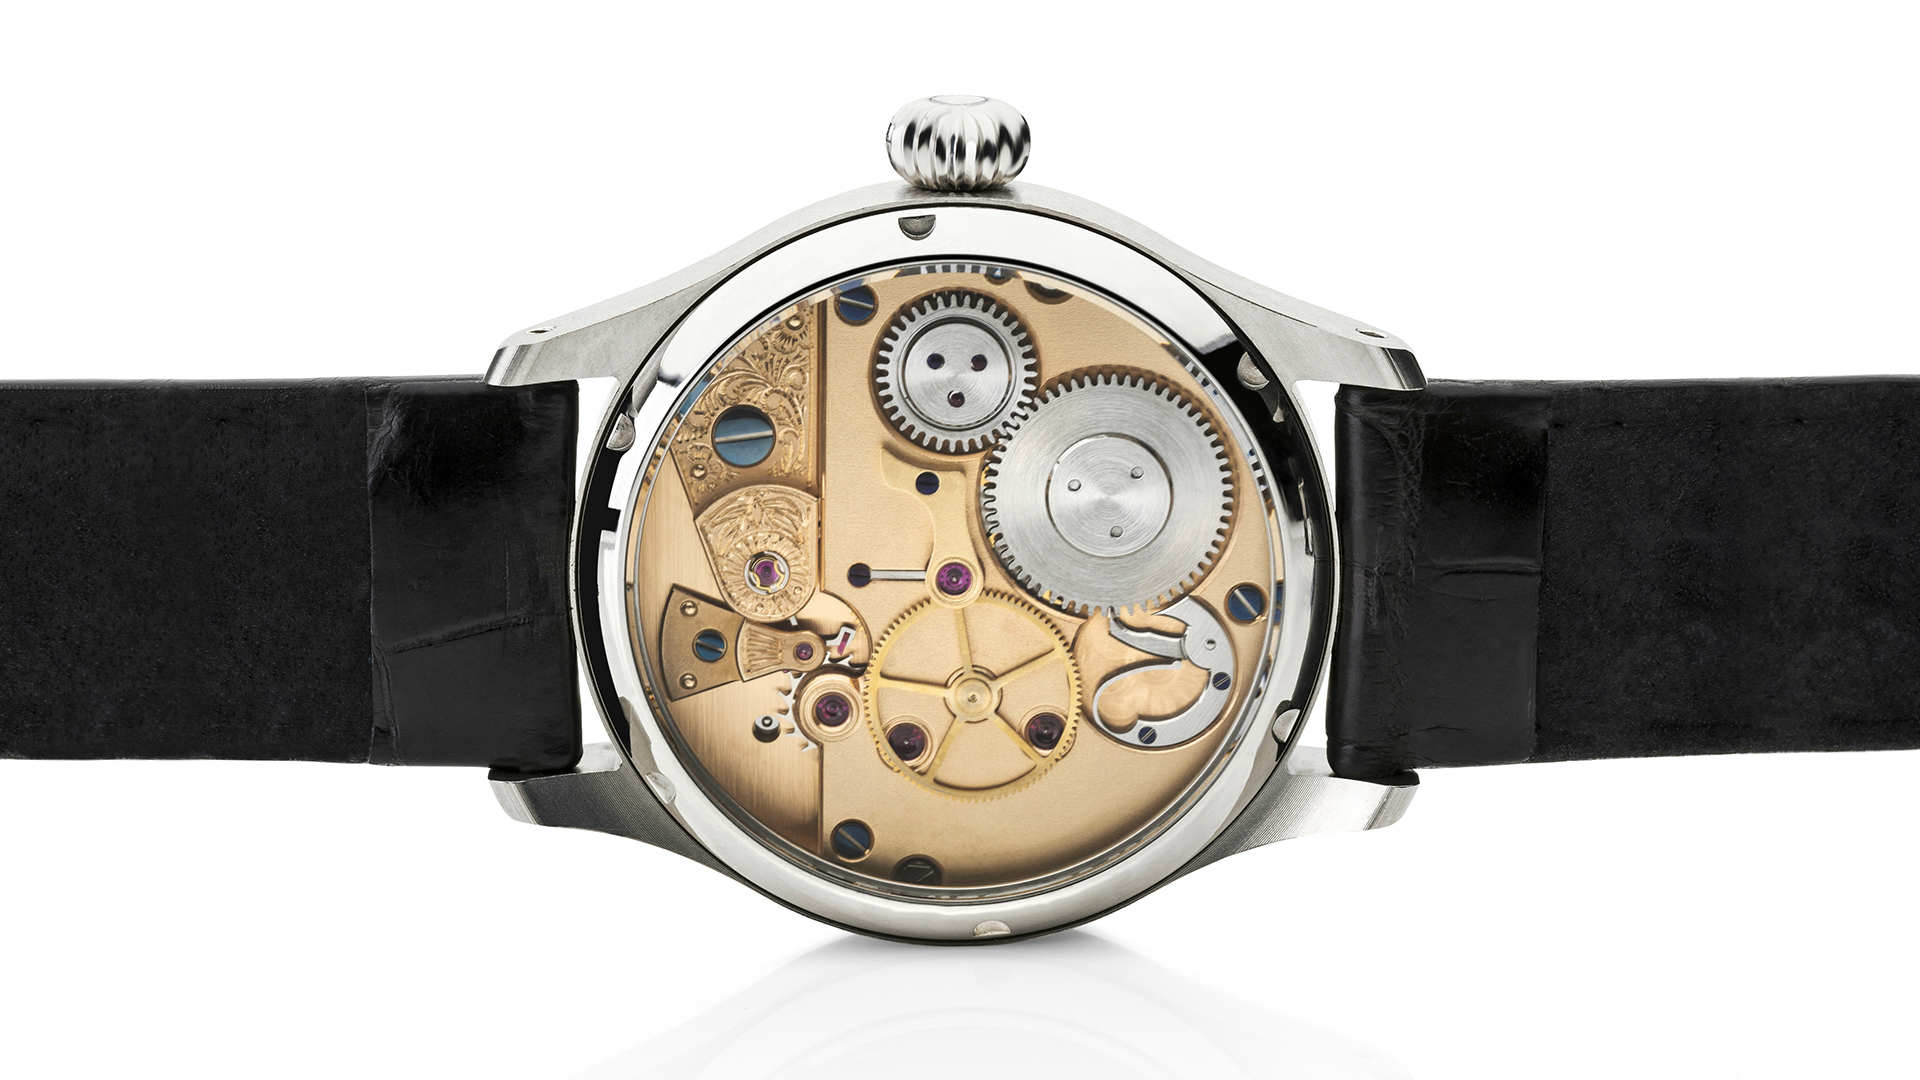 Garrick S2 English watch movement